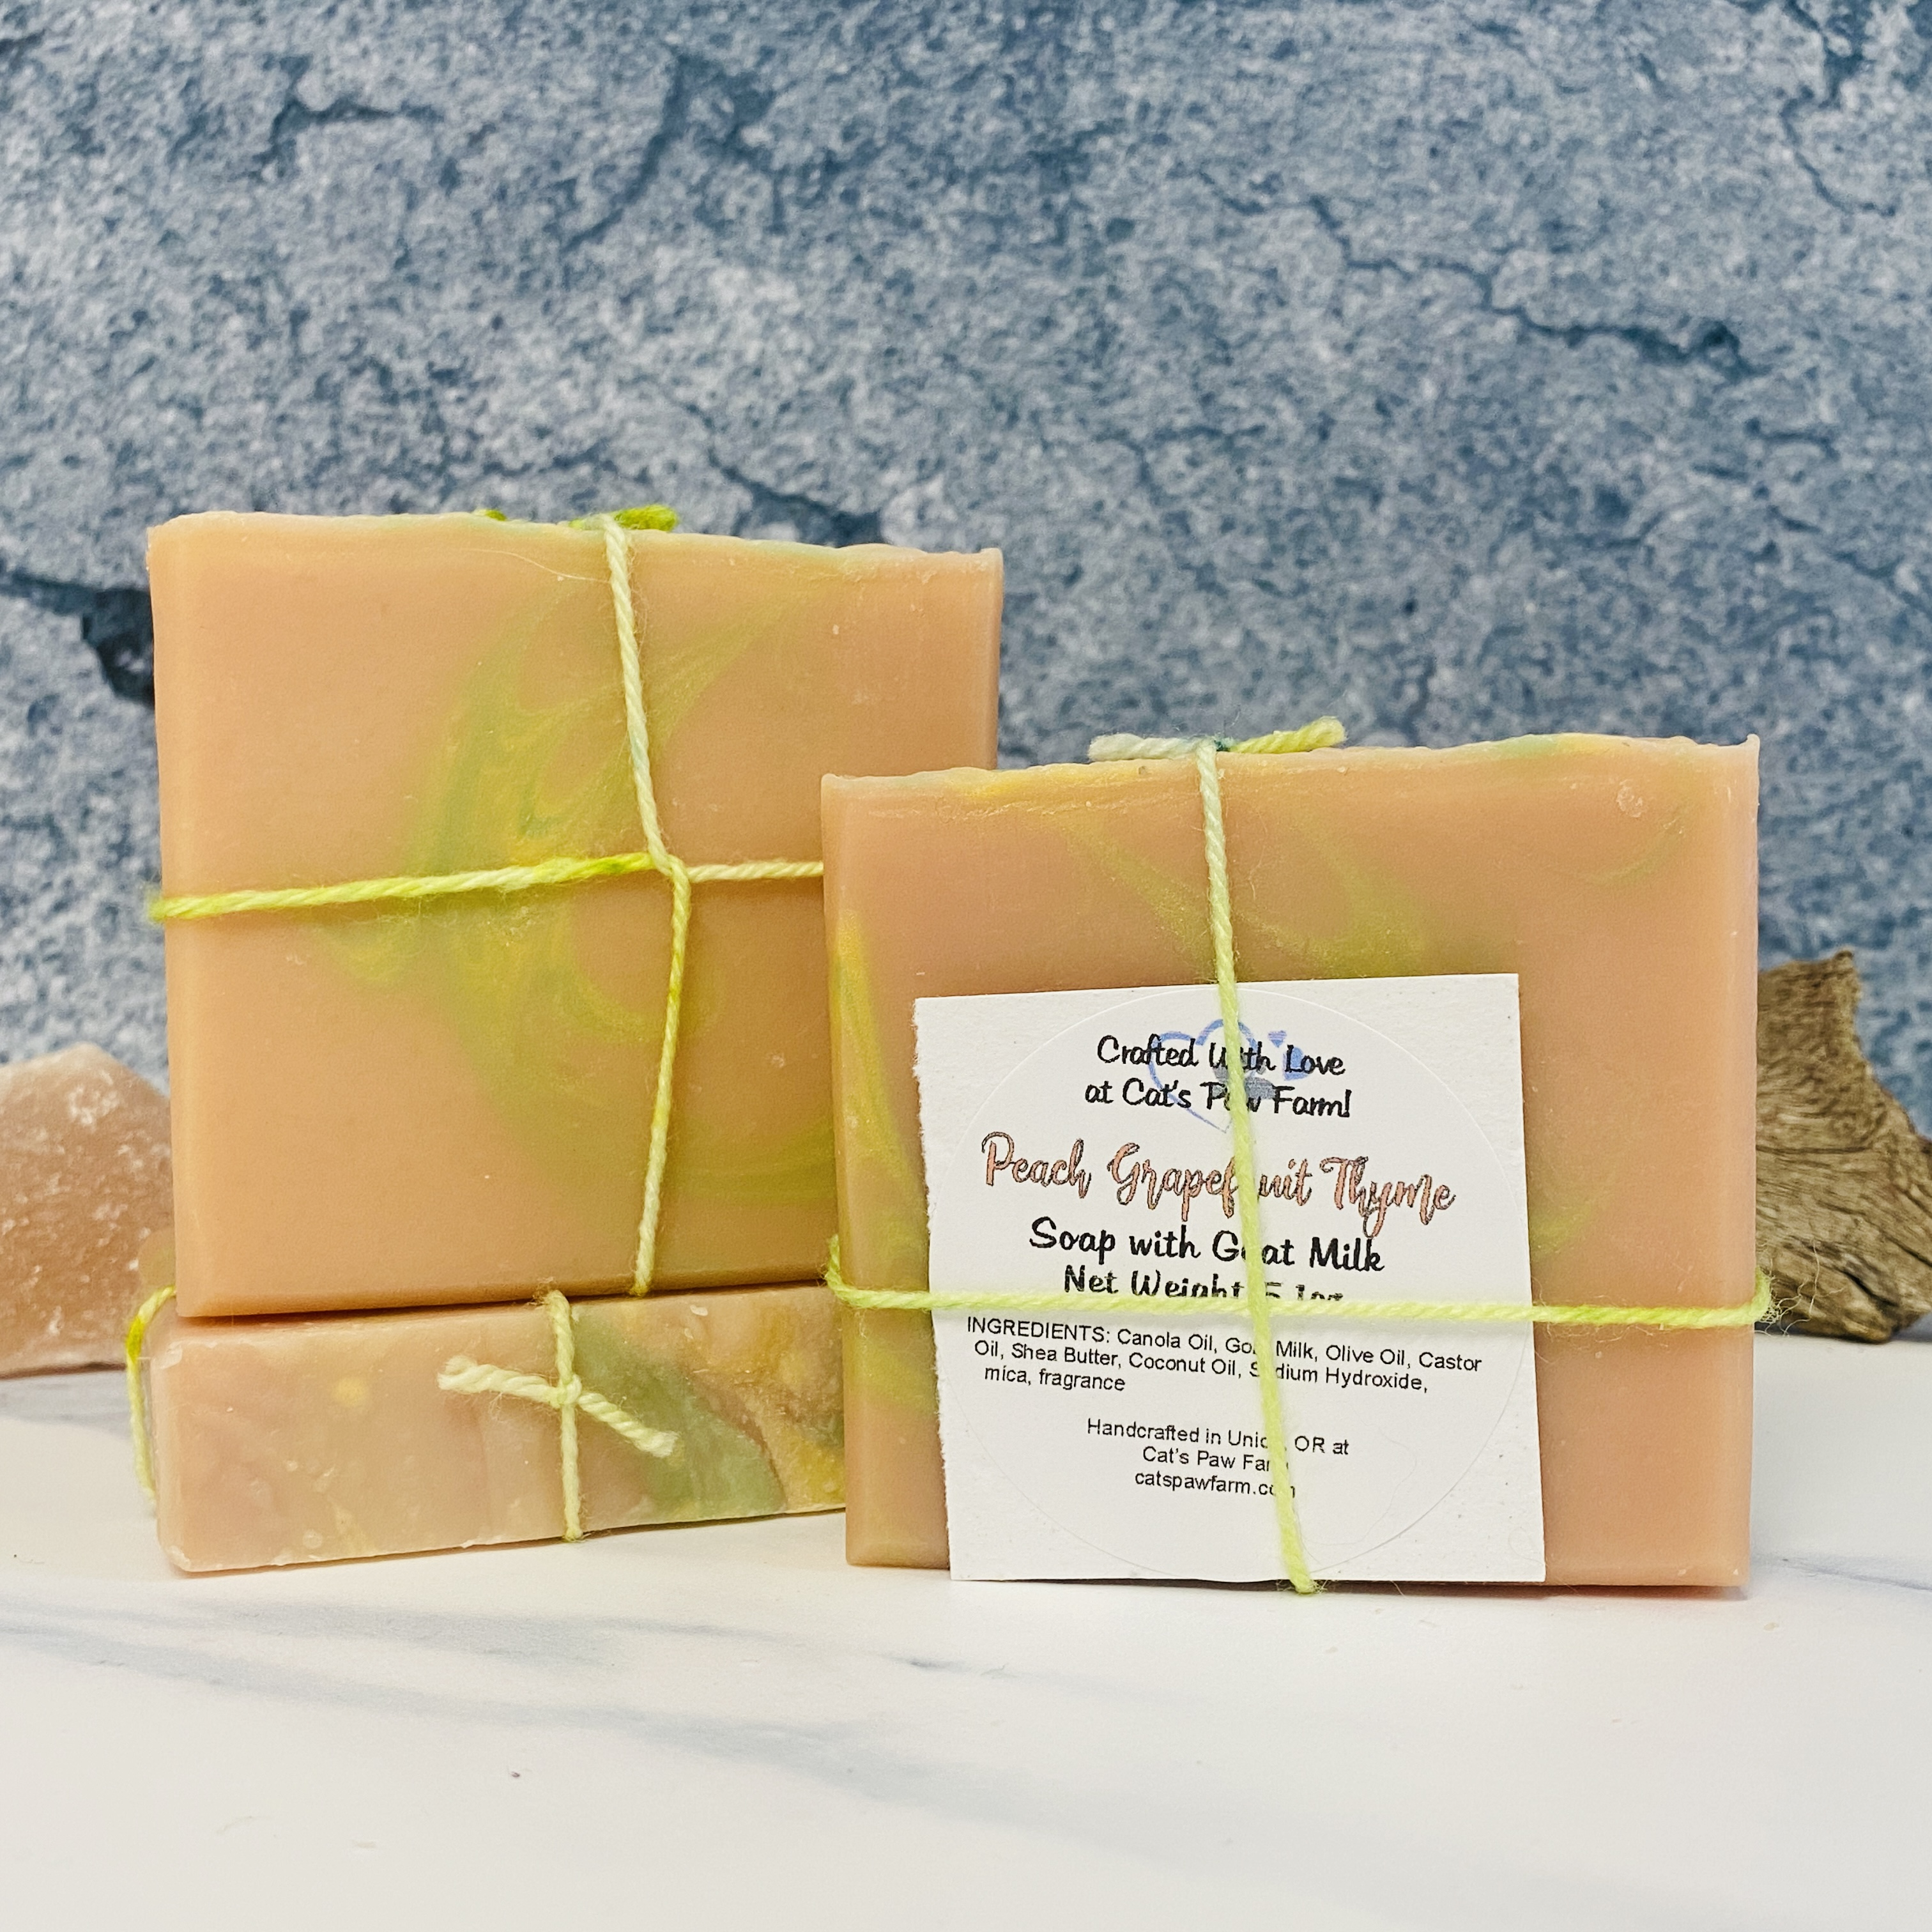 Peach Grapefruit & Thyme Scented Soap with Goat Milk